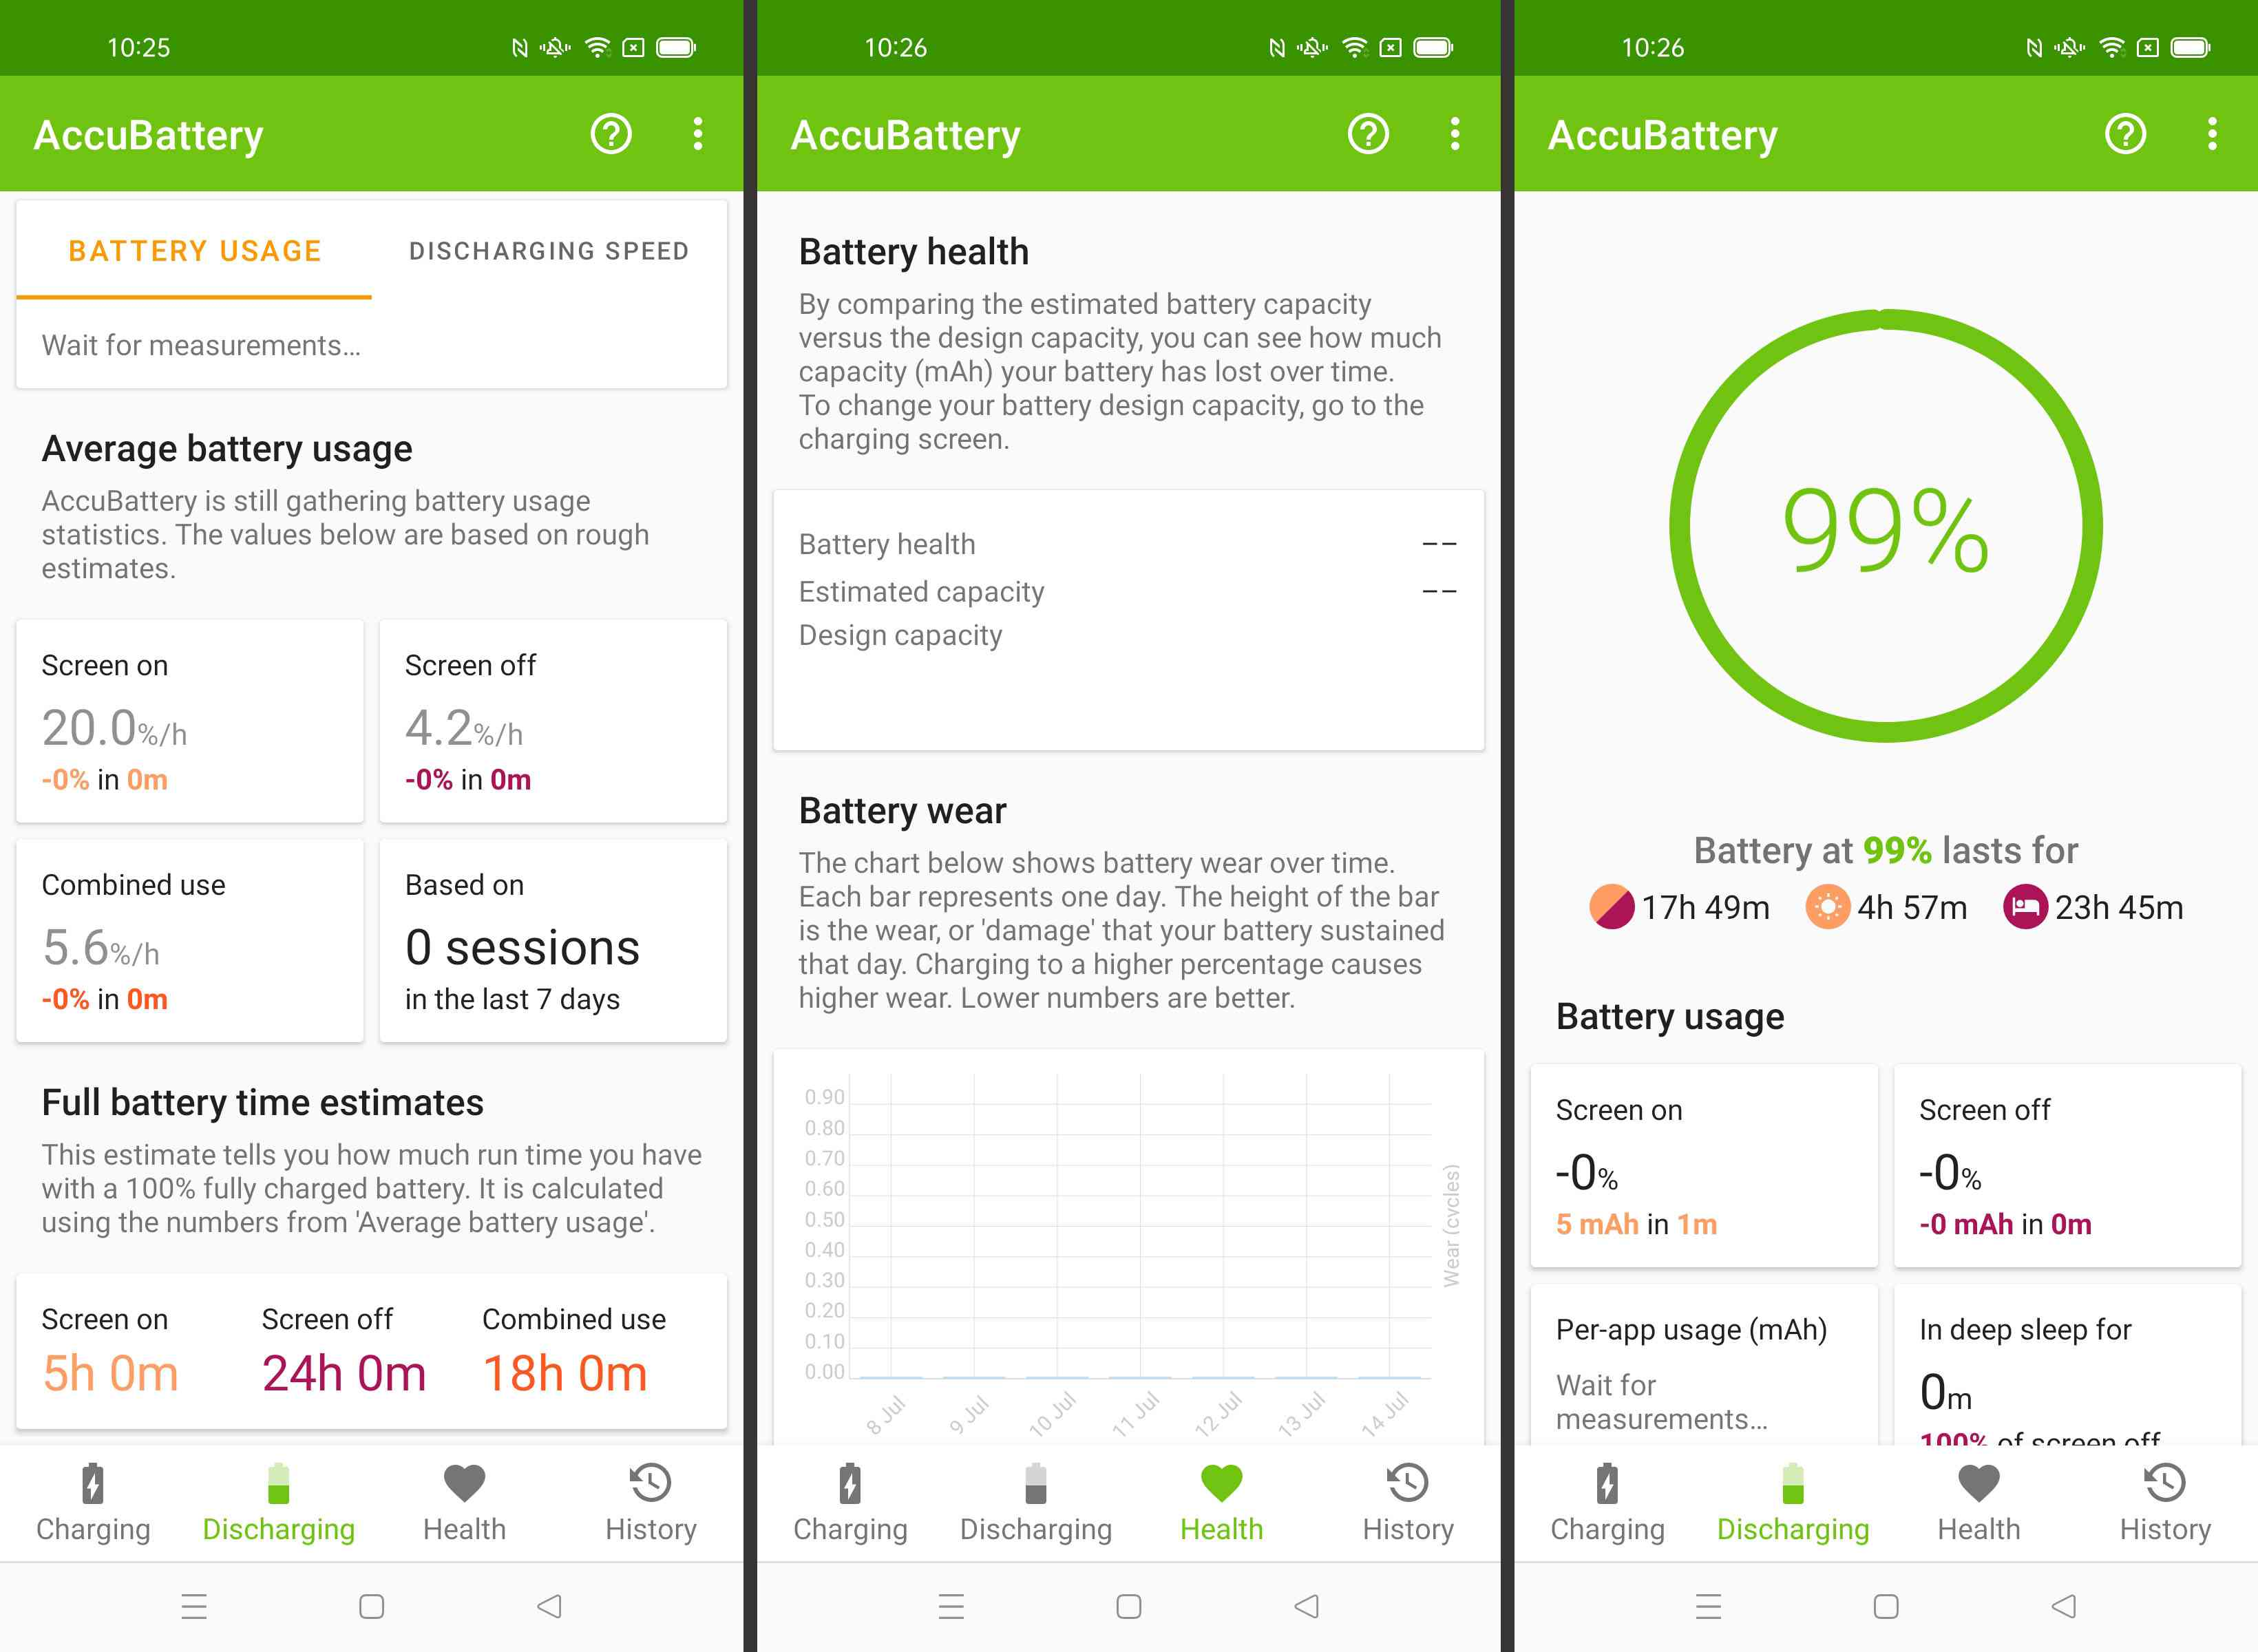 Steps required to view battery health on Android via AccuBattery